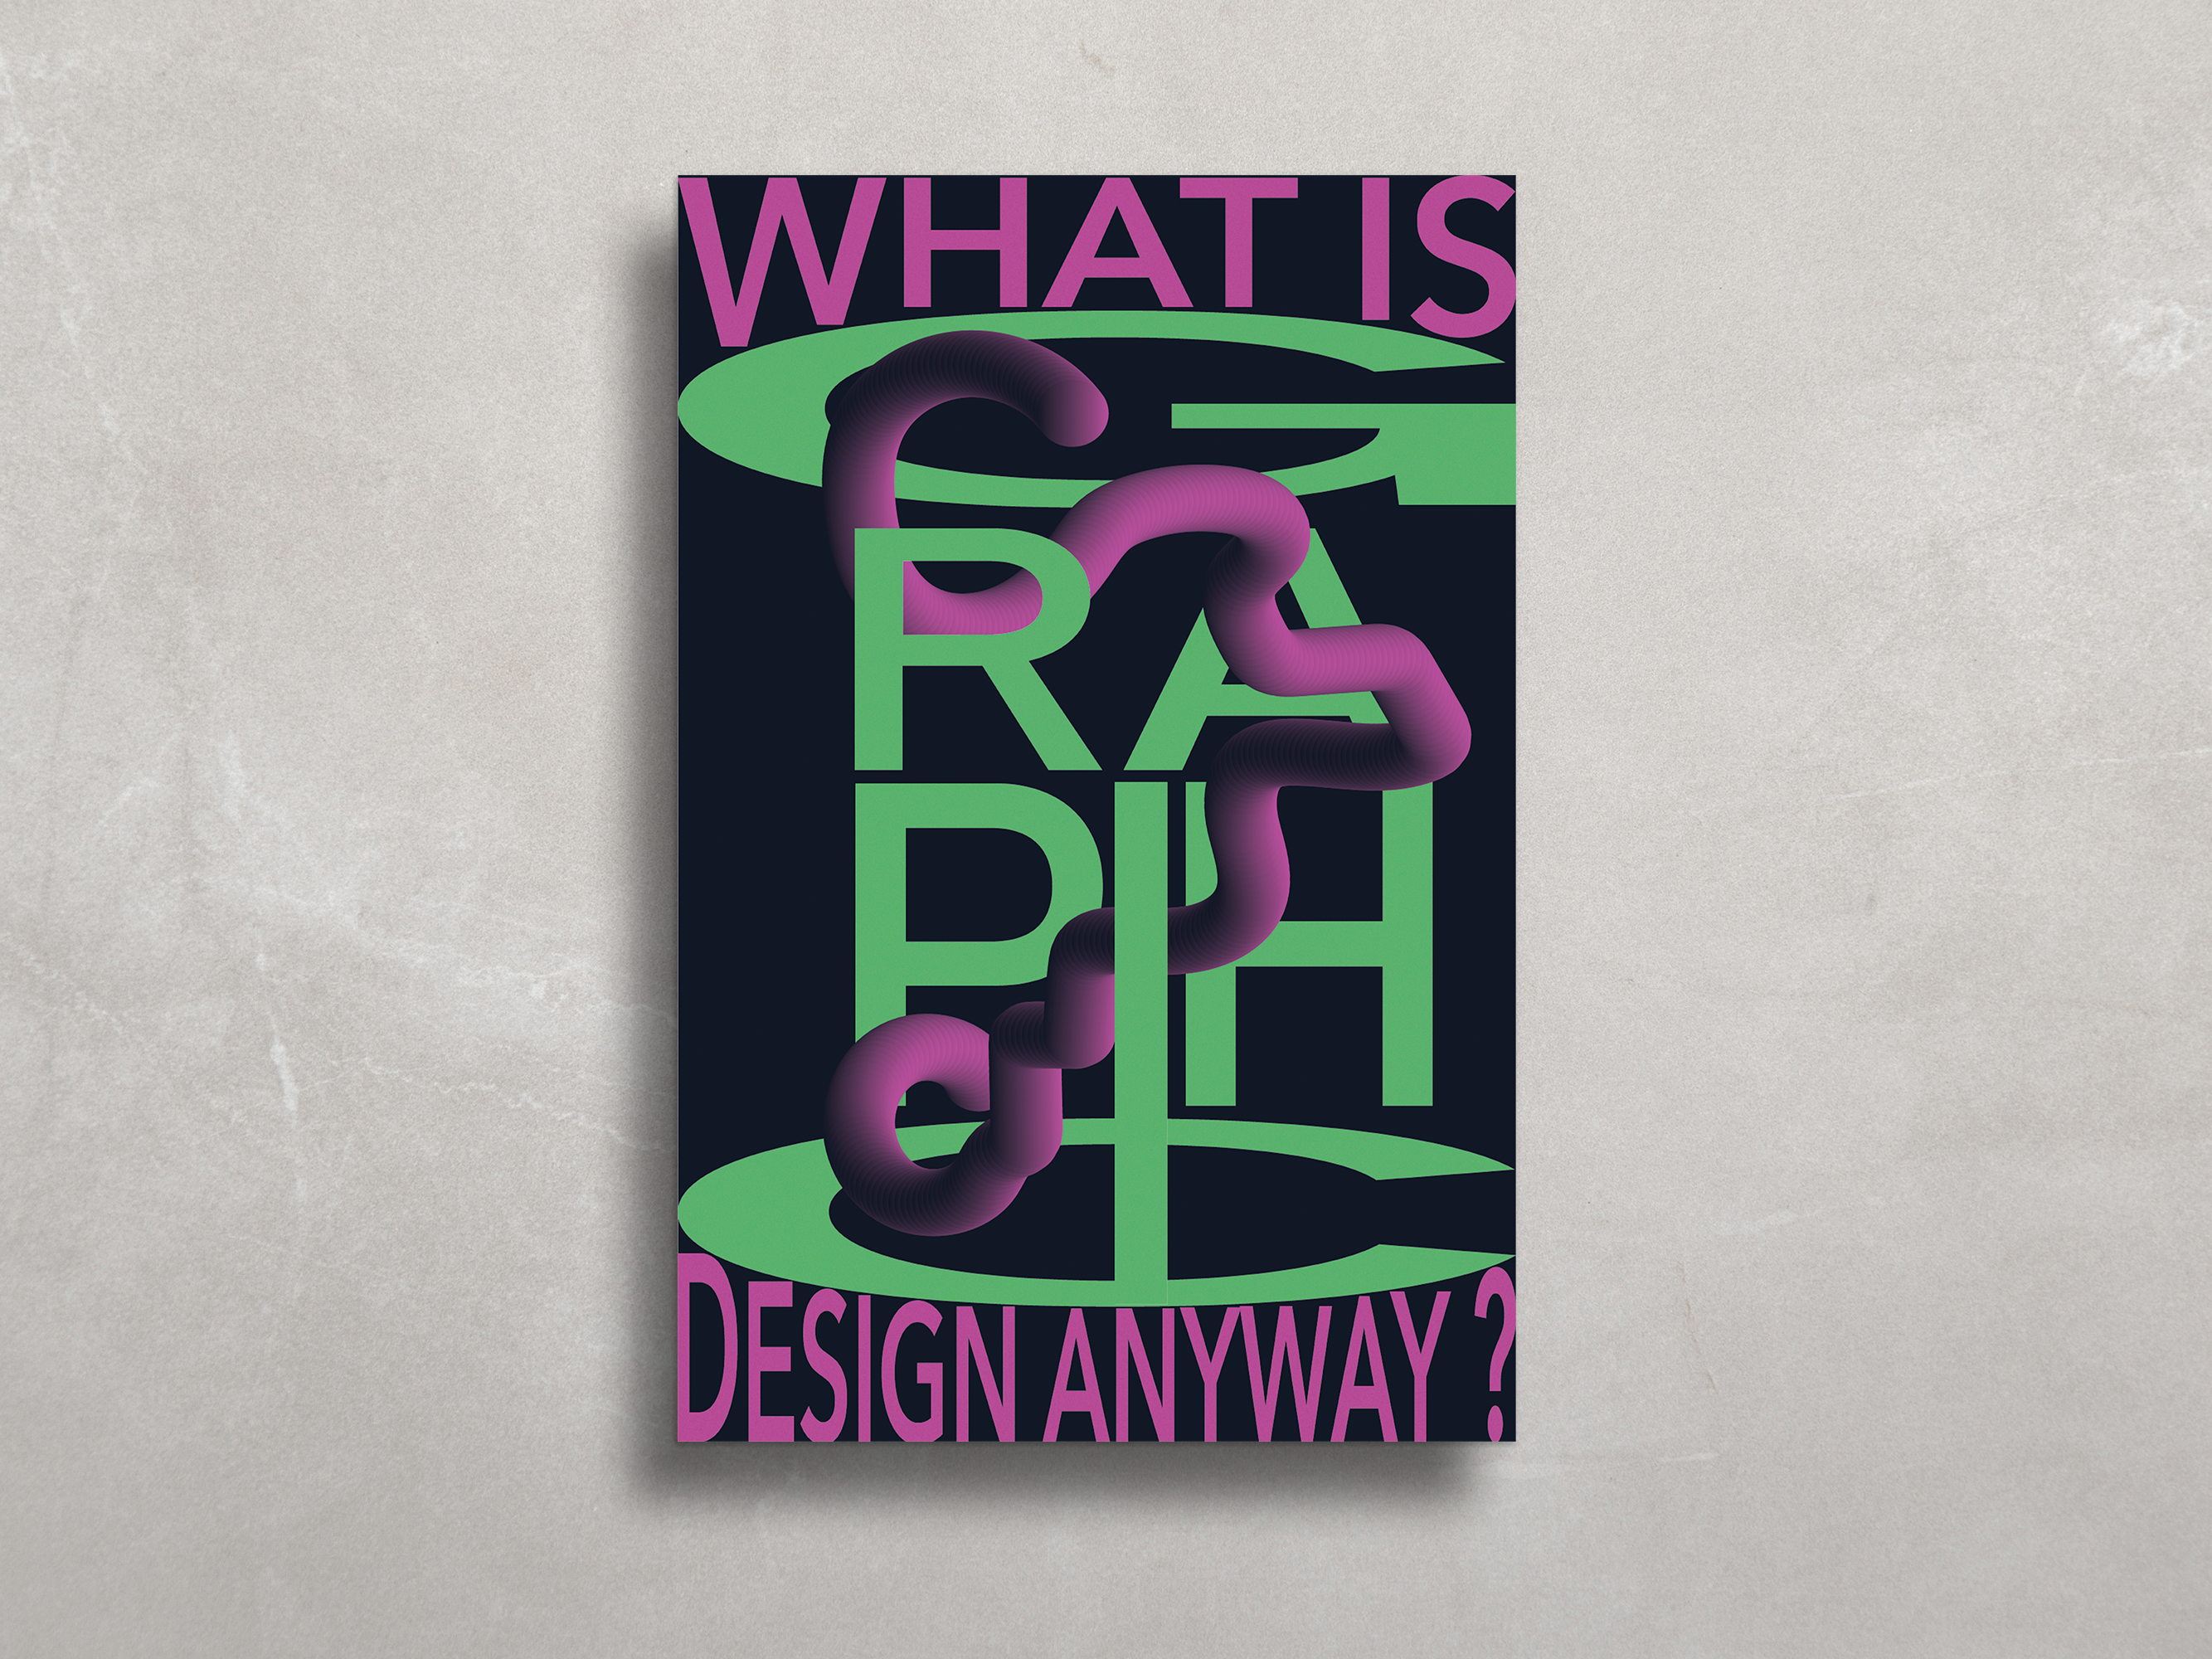 What is Graphic Design Anyway?